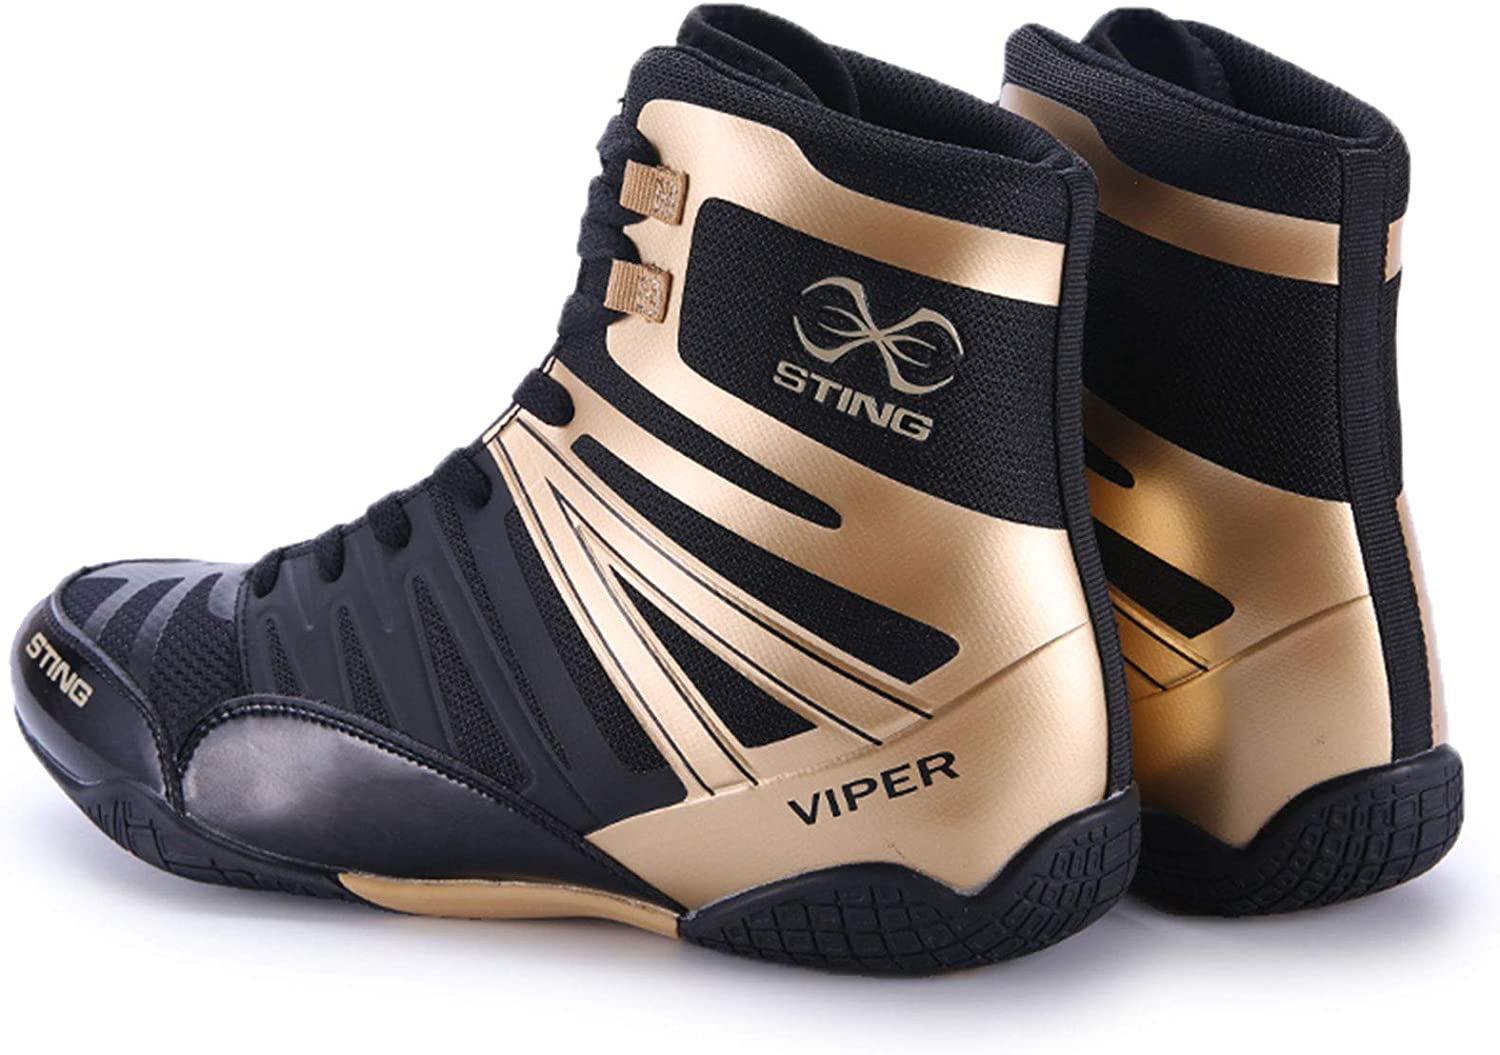 Amoda Mens Breathable Boxing Shoes Wrestling Shoes High-top Non-Slip Professional Training Shoes Squat Shoes